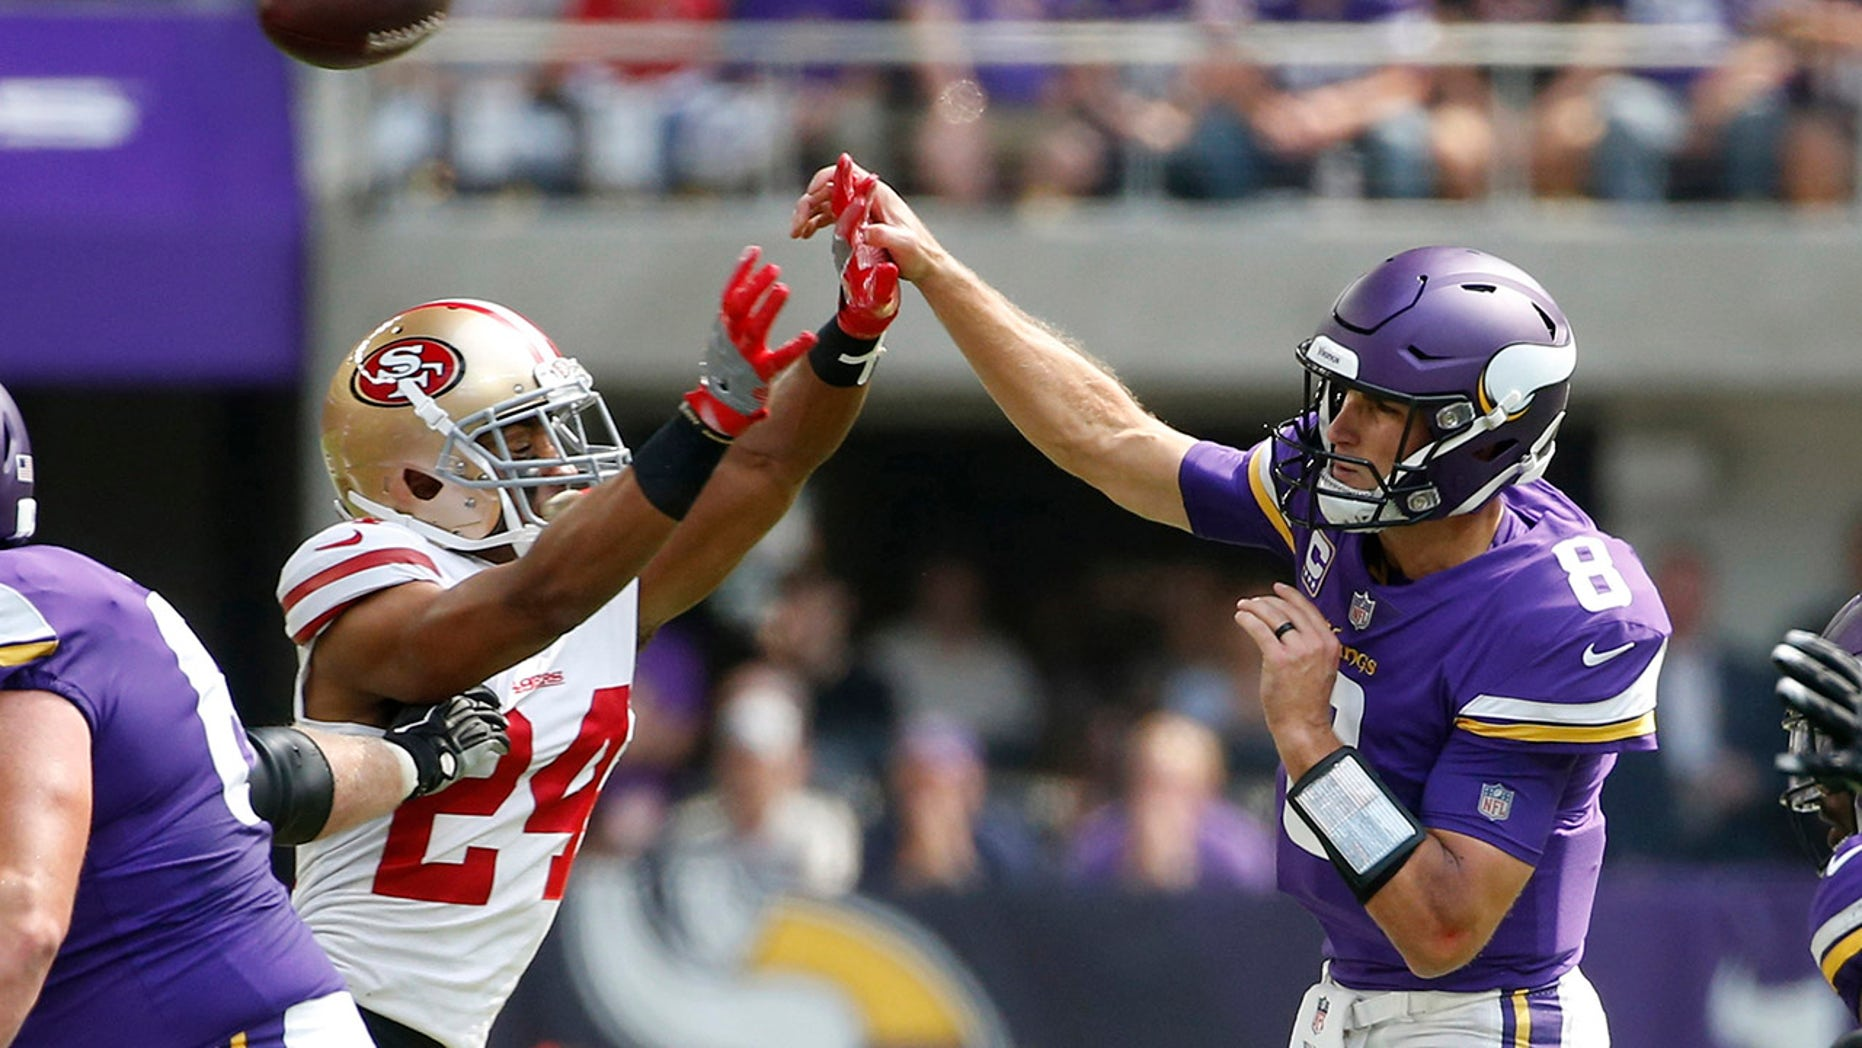 Minnesota Vikings quarterback Kirk Cousins (8) throws a pass over San Francisco 49ers defensive back K'Waun Williams (24) during the first half of an NFL football game, Sunday, Sept. 9, 2018, in Minneapolis. (AP Photo/Bruce Kluckhohn)